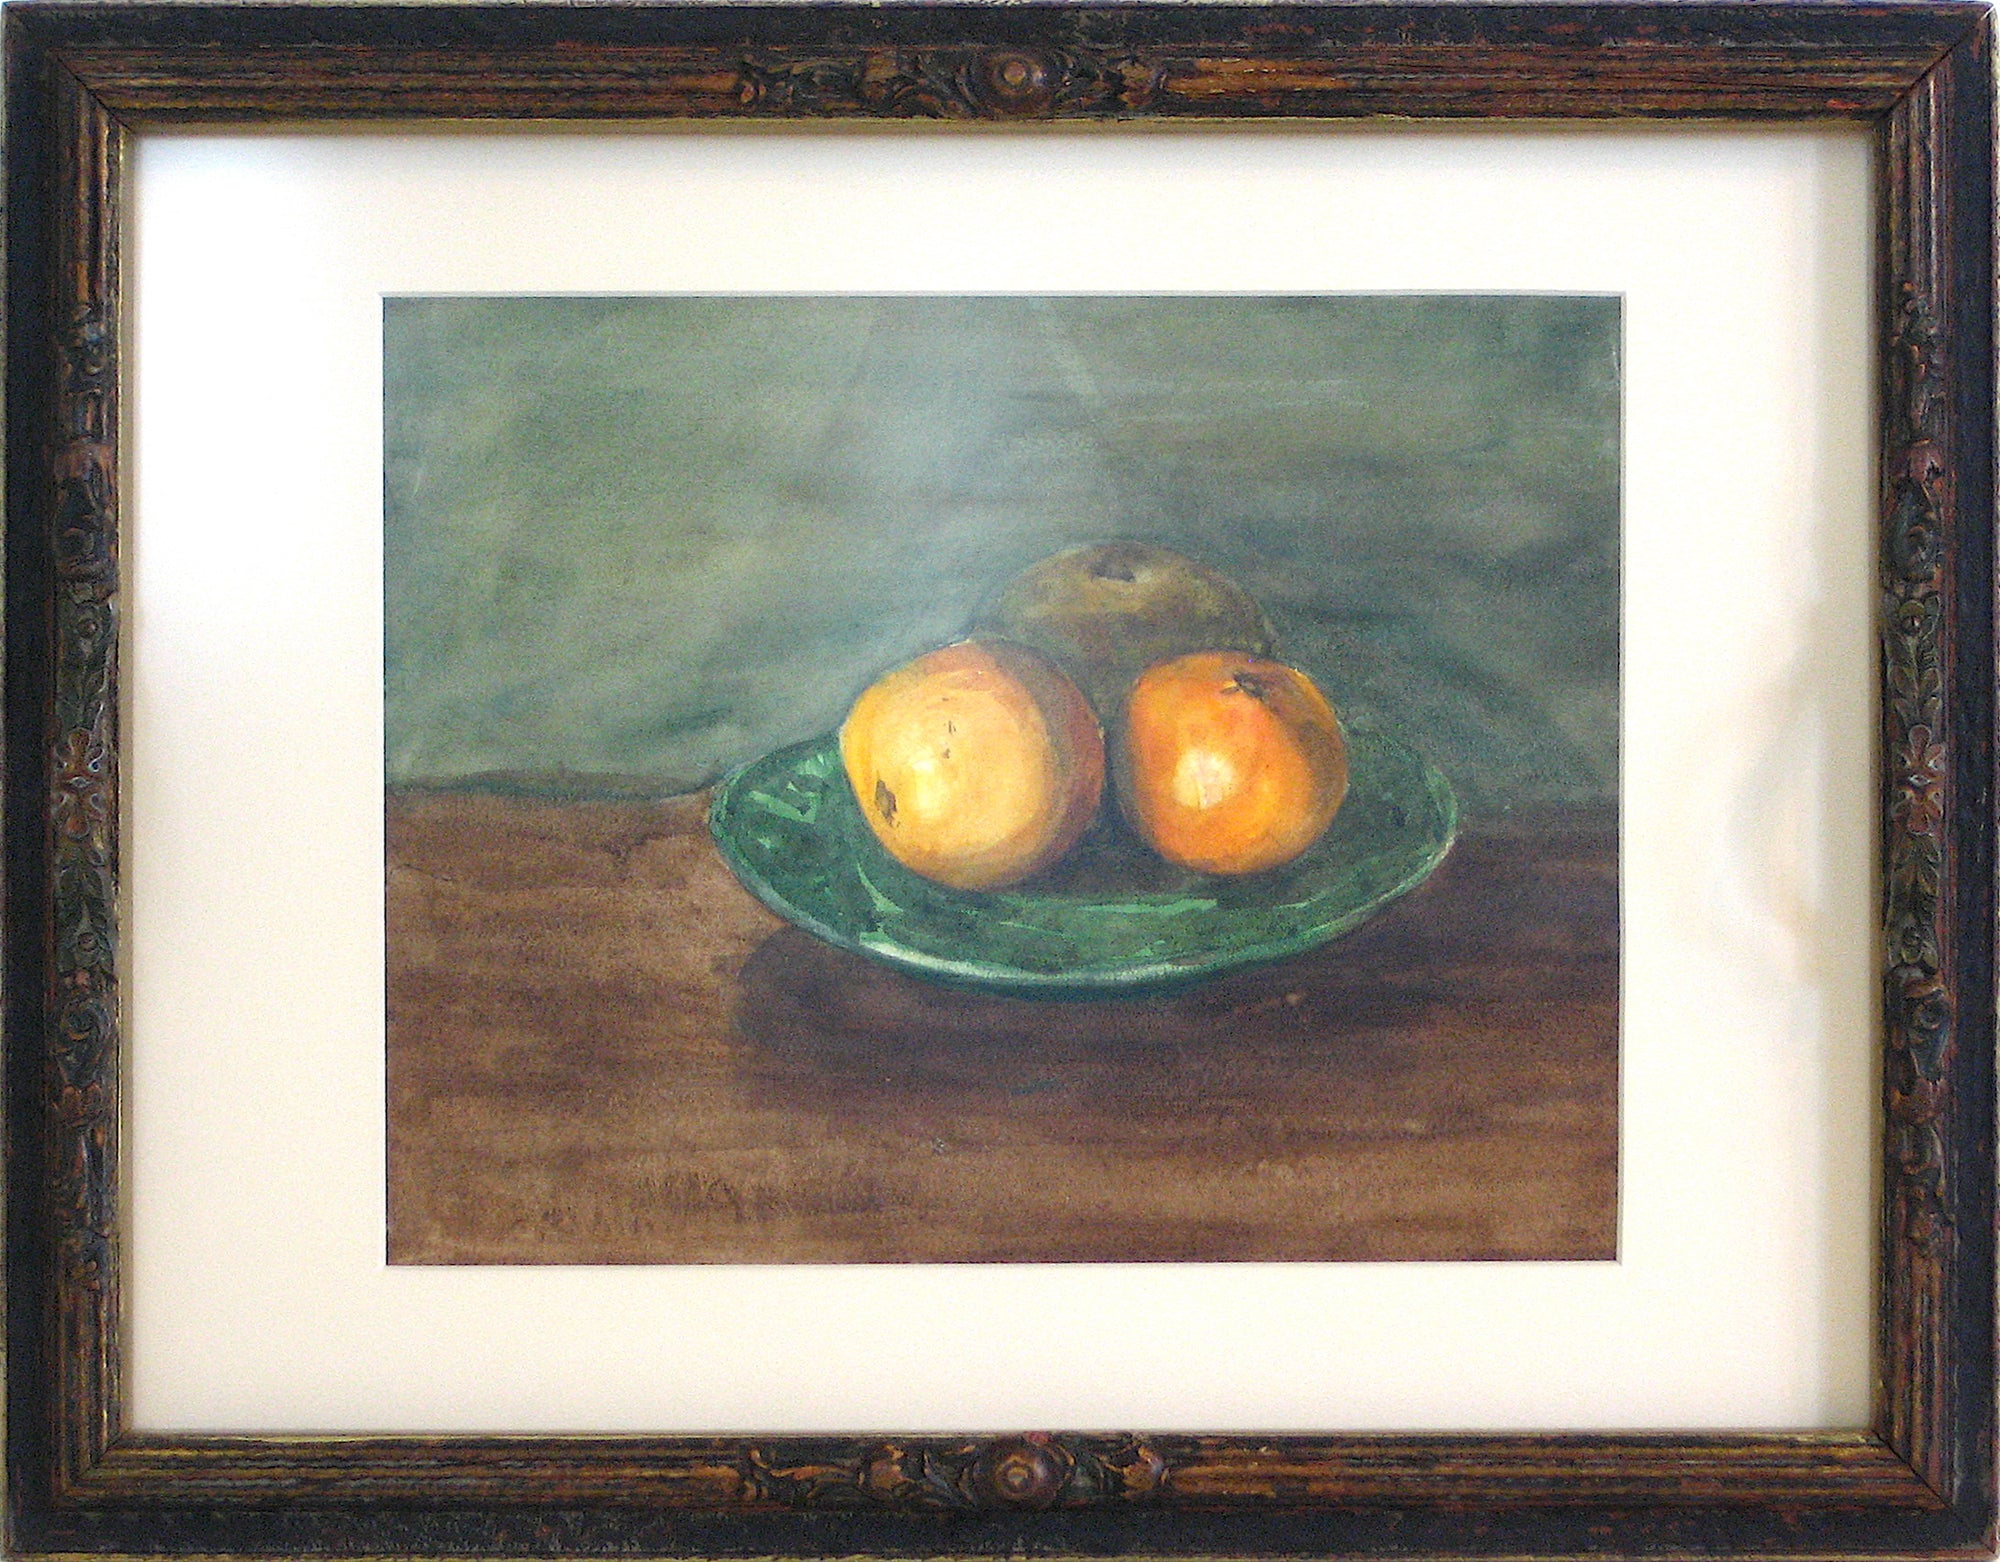 Still Life with Apples Watercolor on Paper<br>Early-Mid 1800s<br><br>#10152